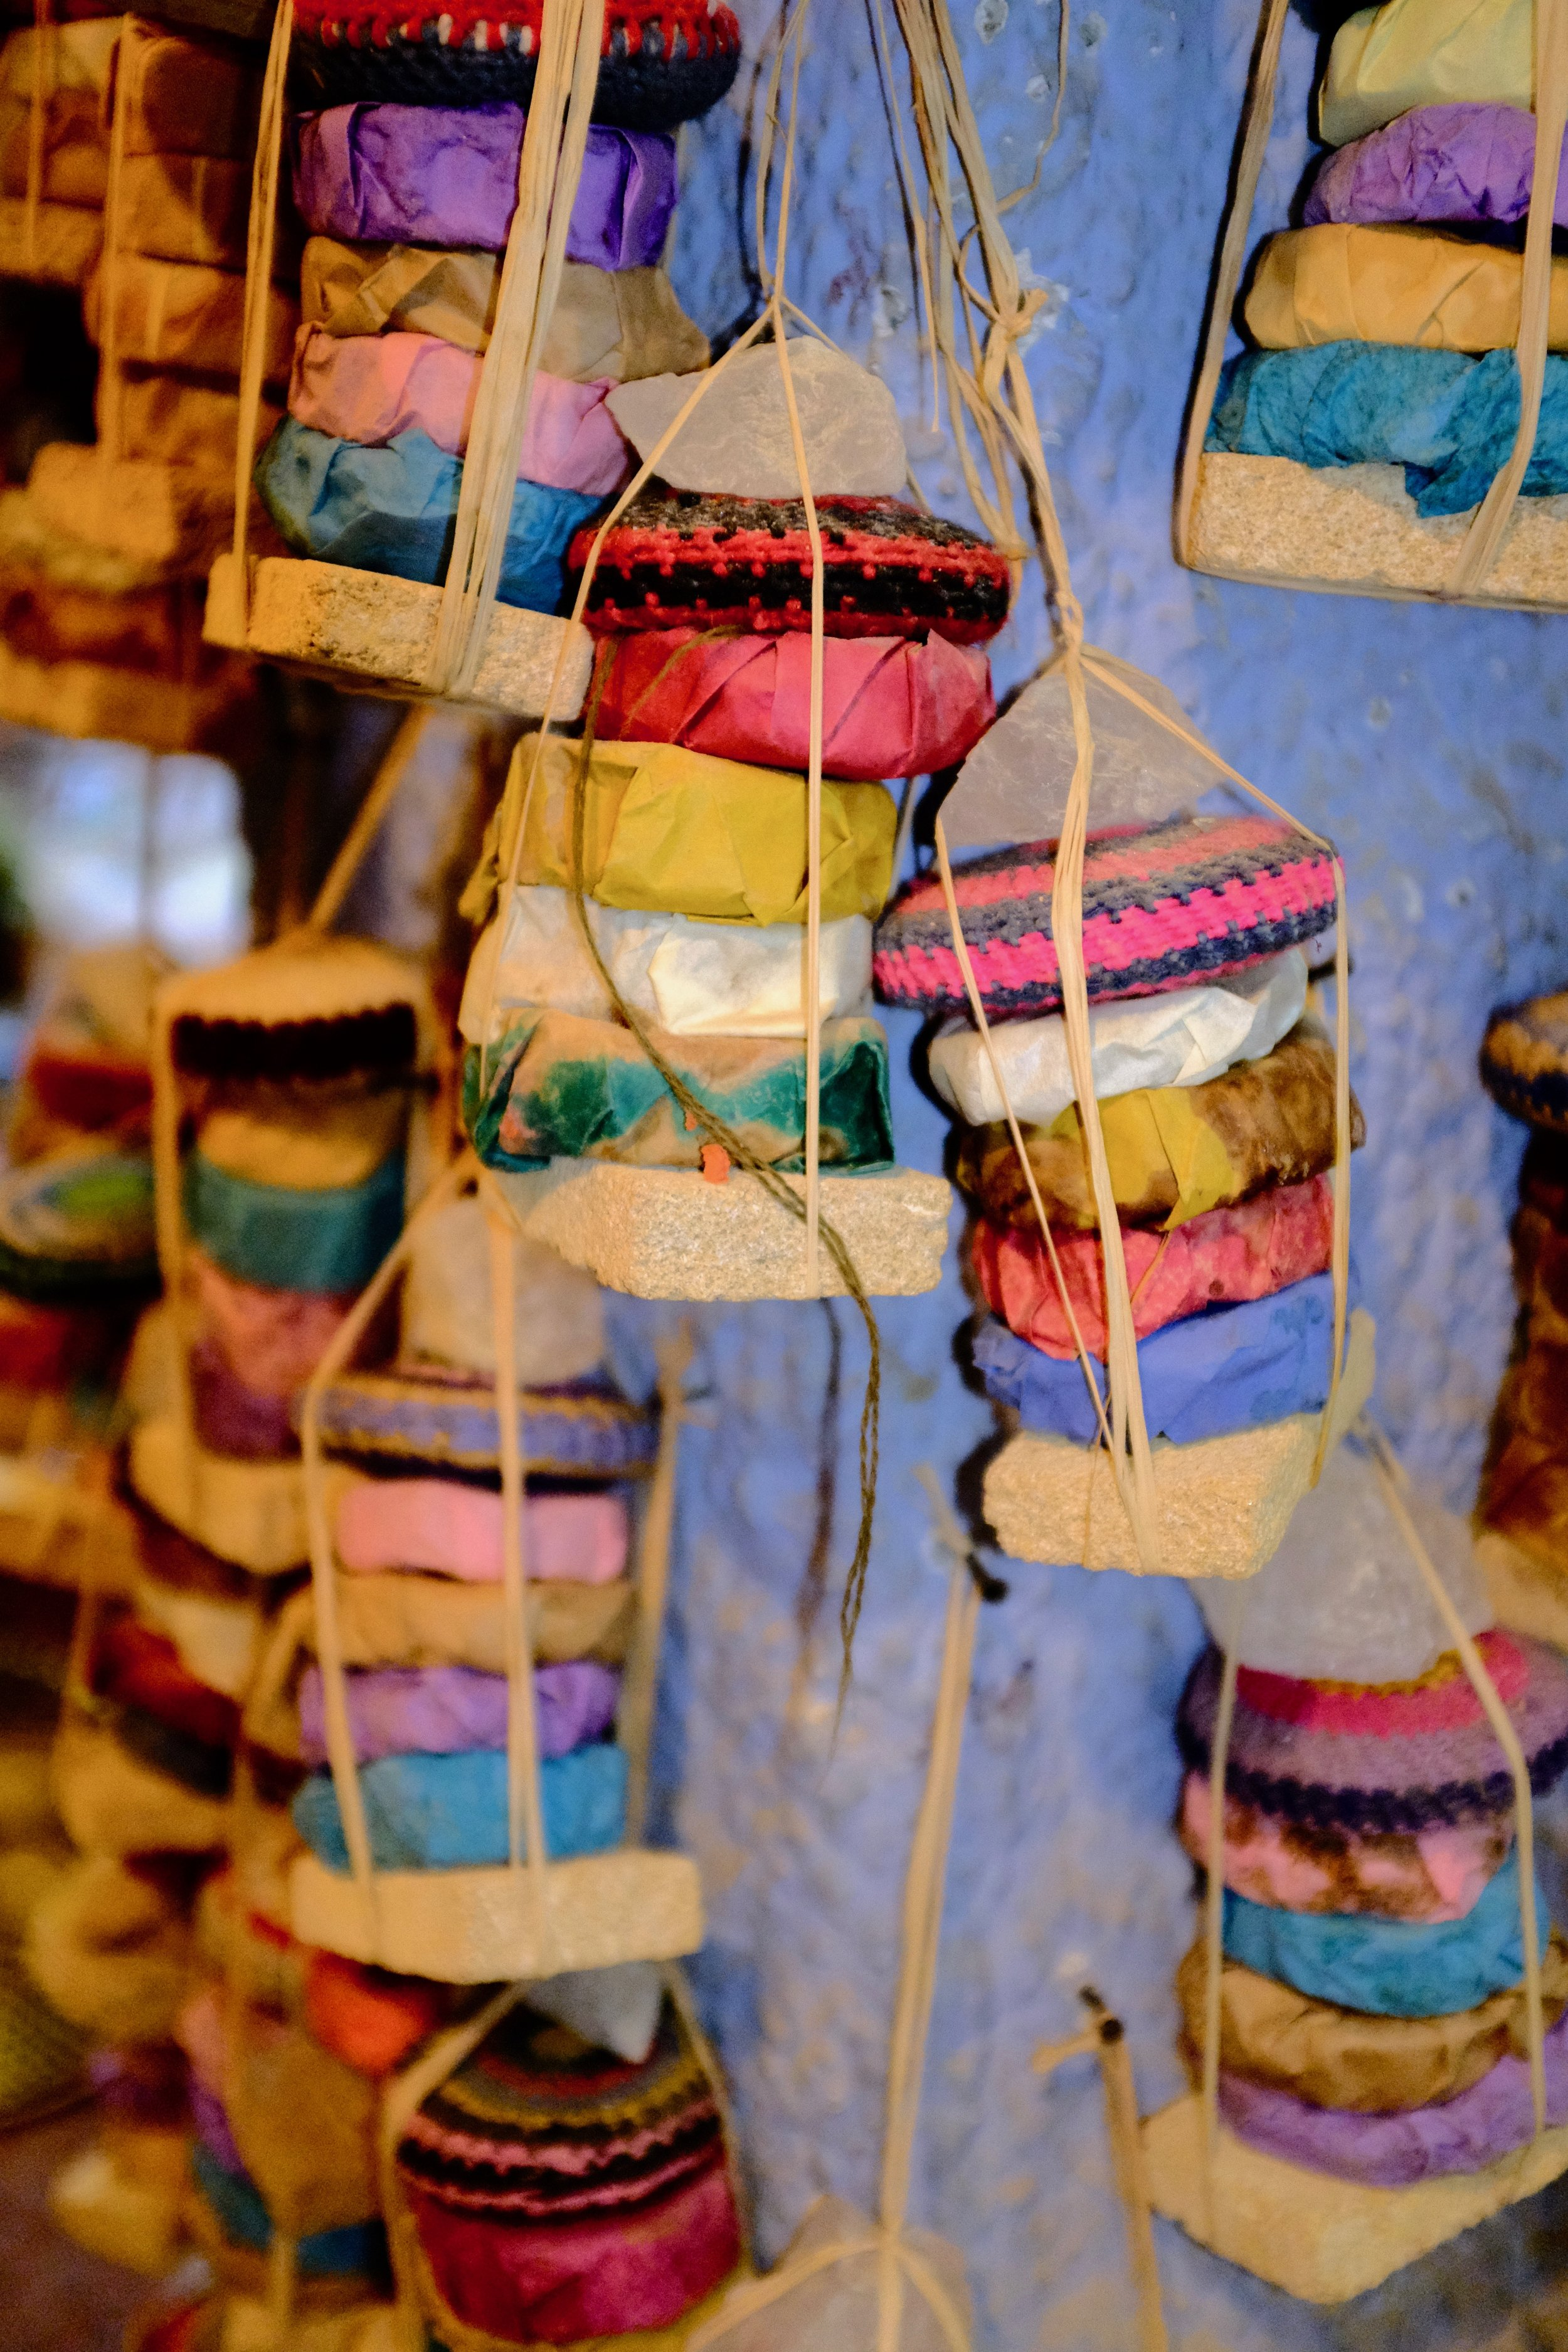 Handmade soaps in Chefchaouen, Morocco.